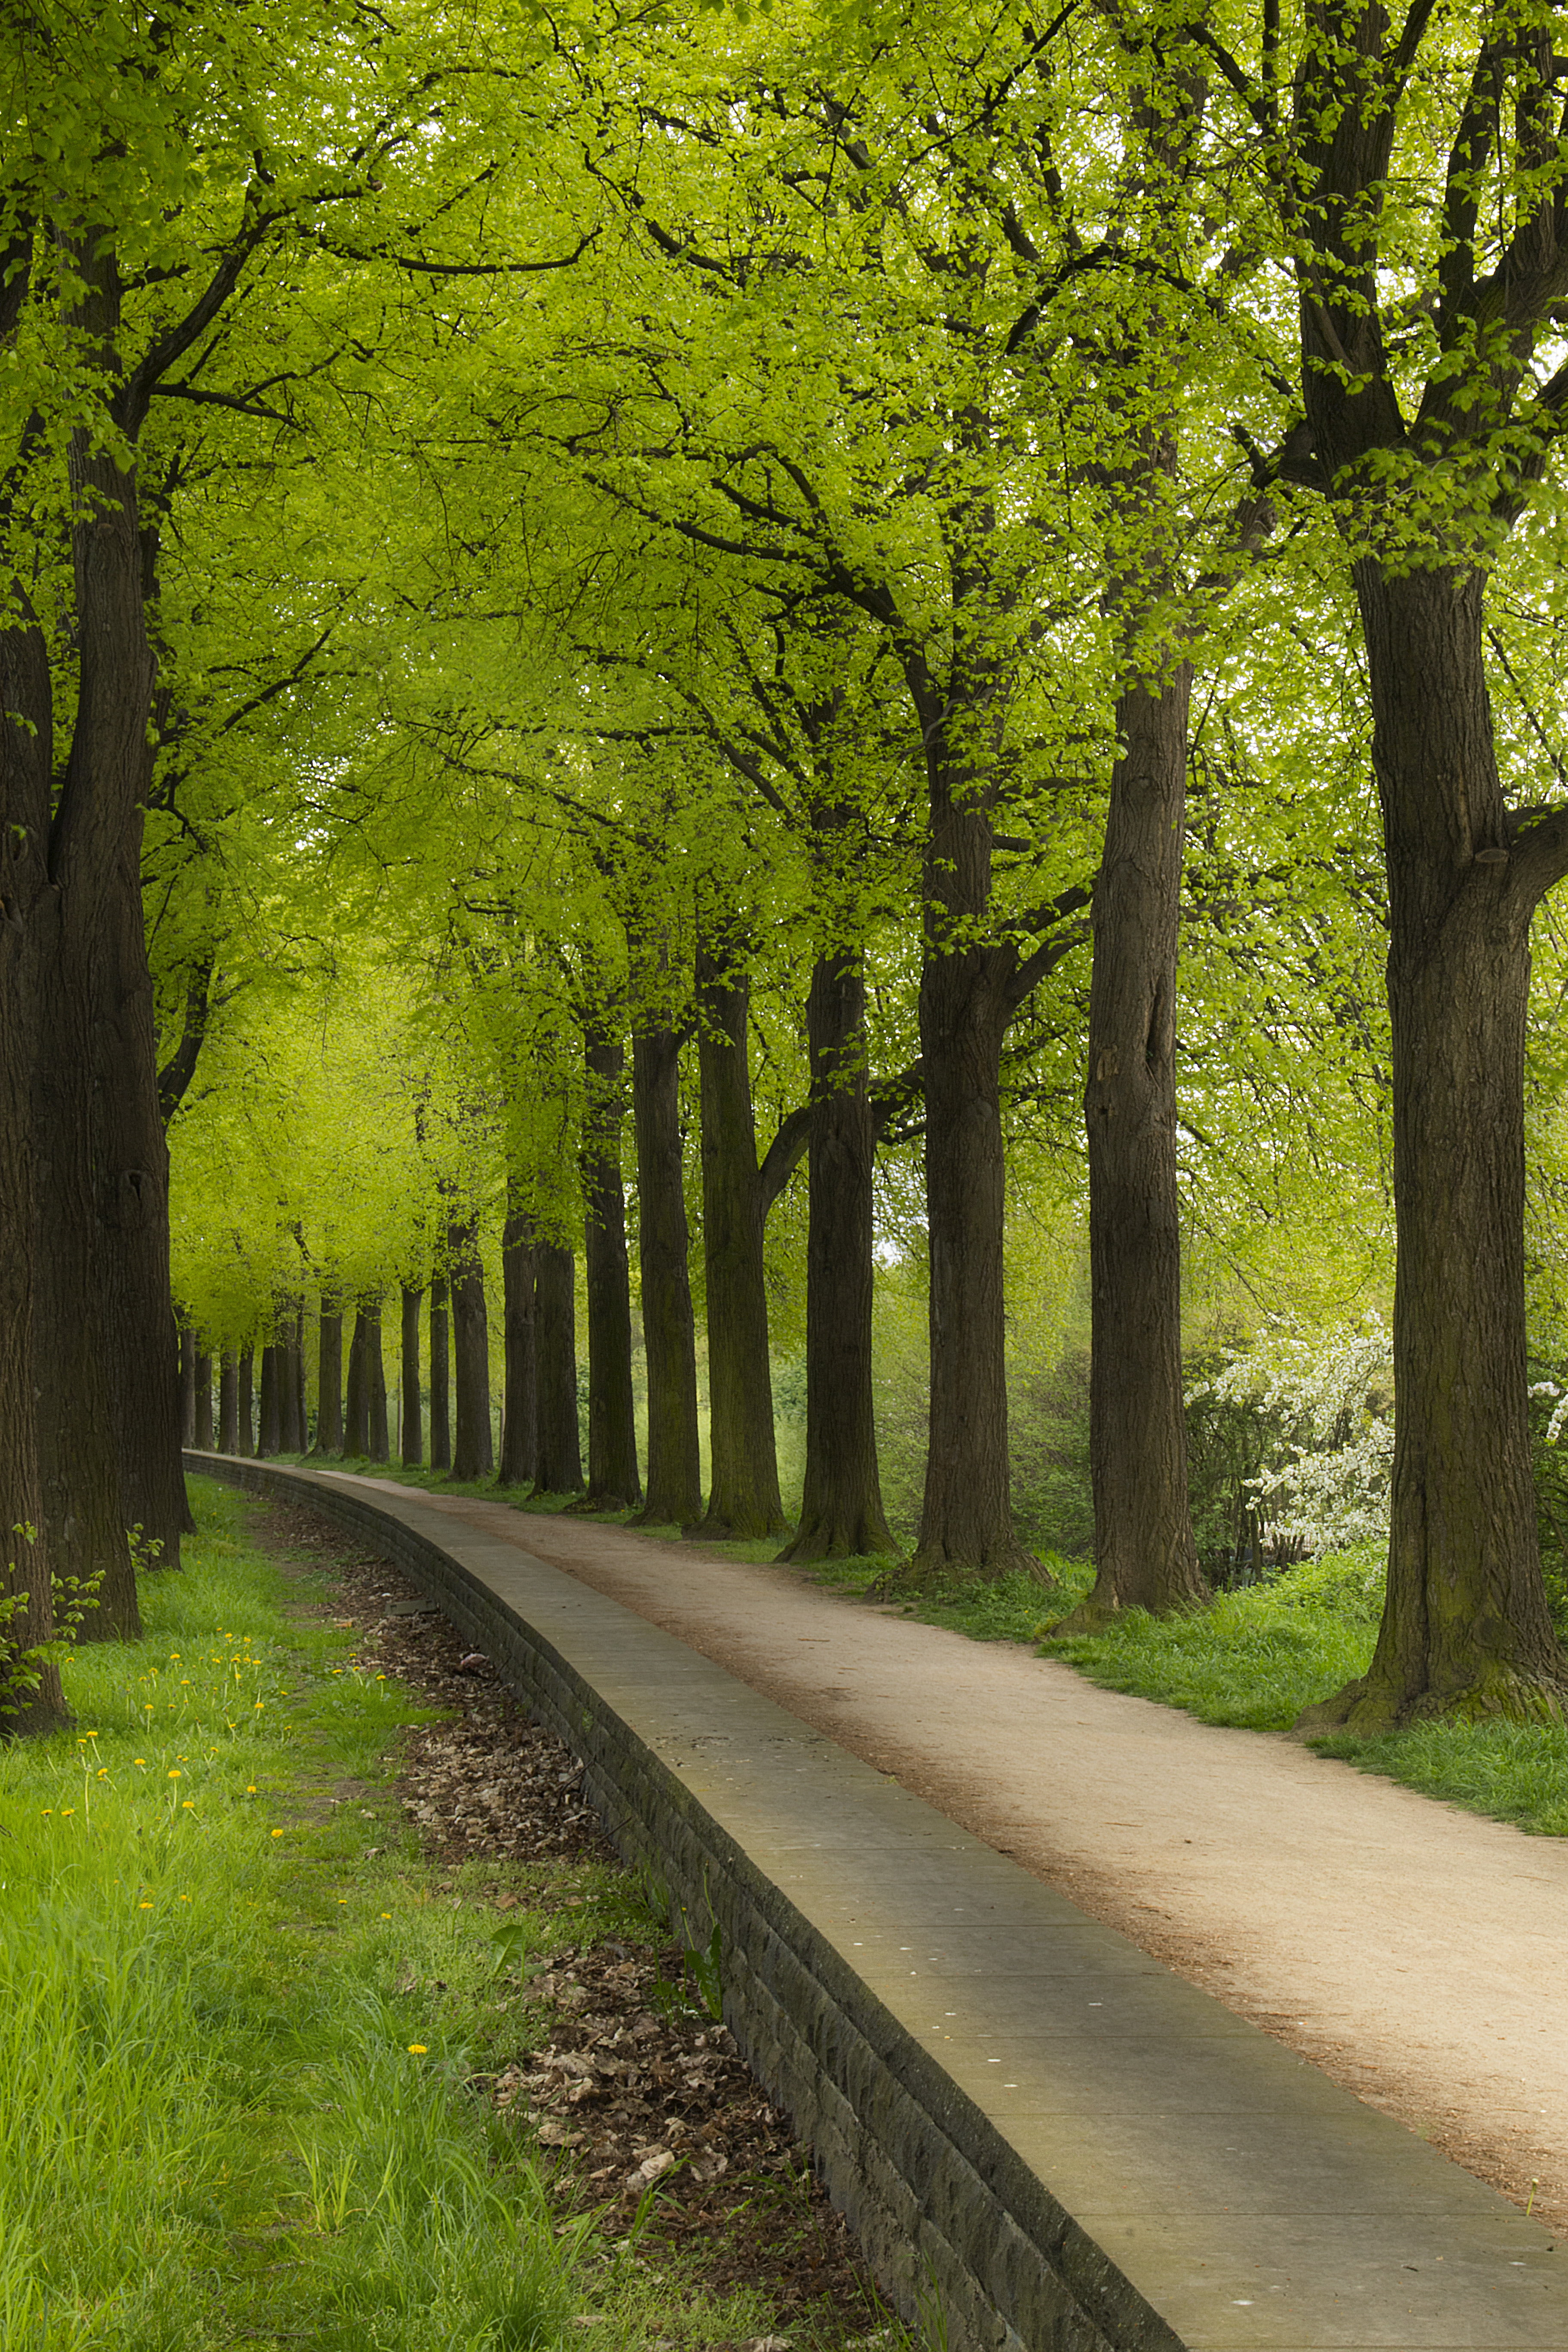 Iphone 2g Wallpaper For Iphone X Grey Concrete Road In Between Green Trees Hd Wallpaper